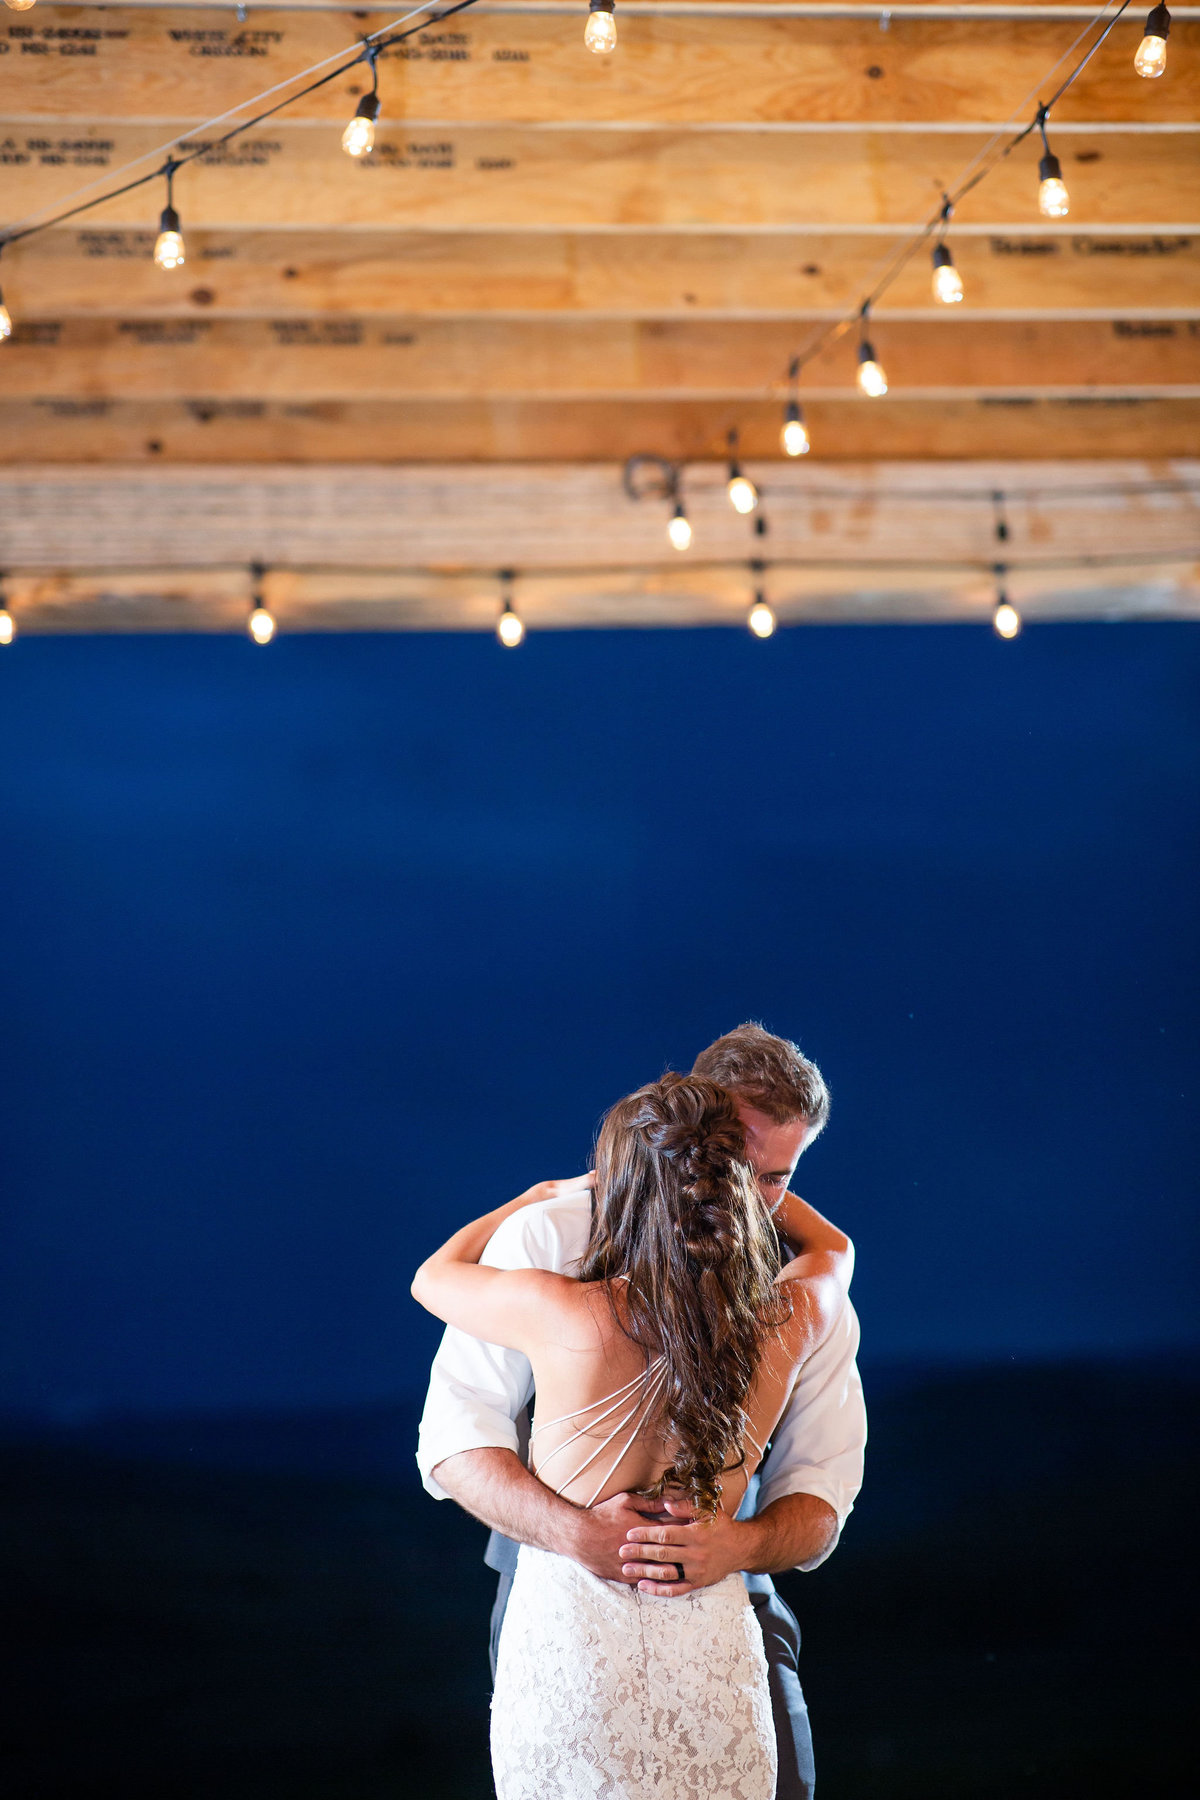 Strawberry-Creek-Ranch-Wedding-Ashley-McKenzie-Photography-Summer-love-on-the-ranch-First-dance